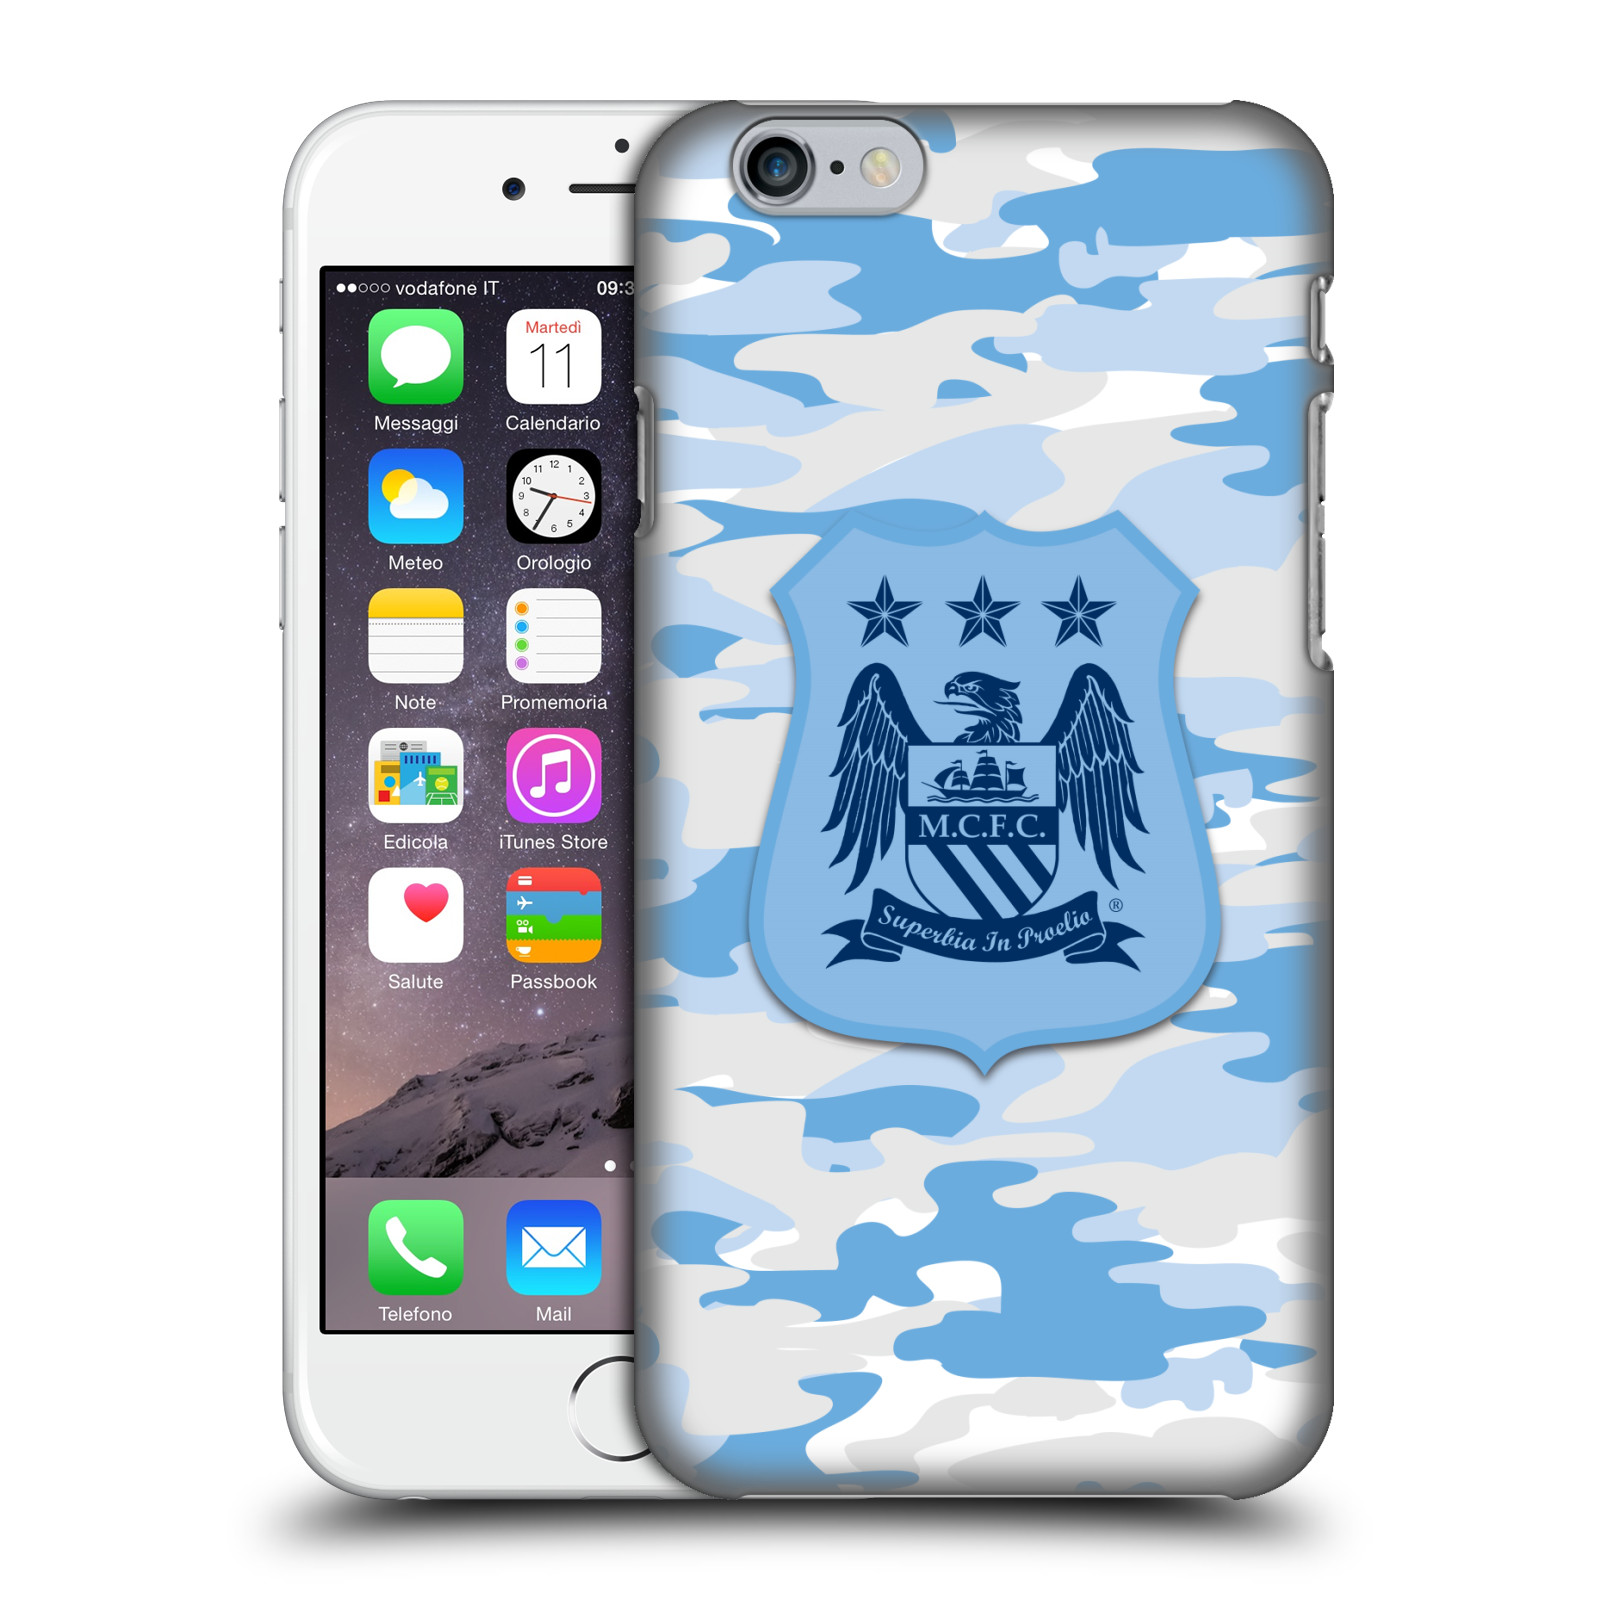 Manchester City FC MCFC Camou-Home Colourways One colour